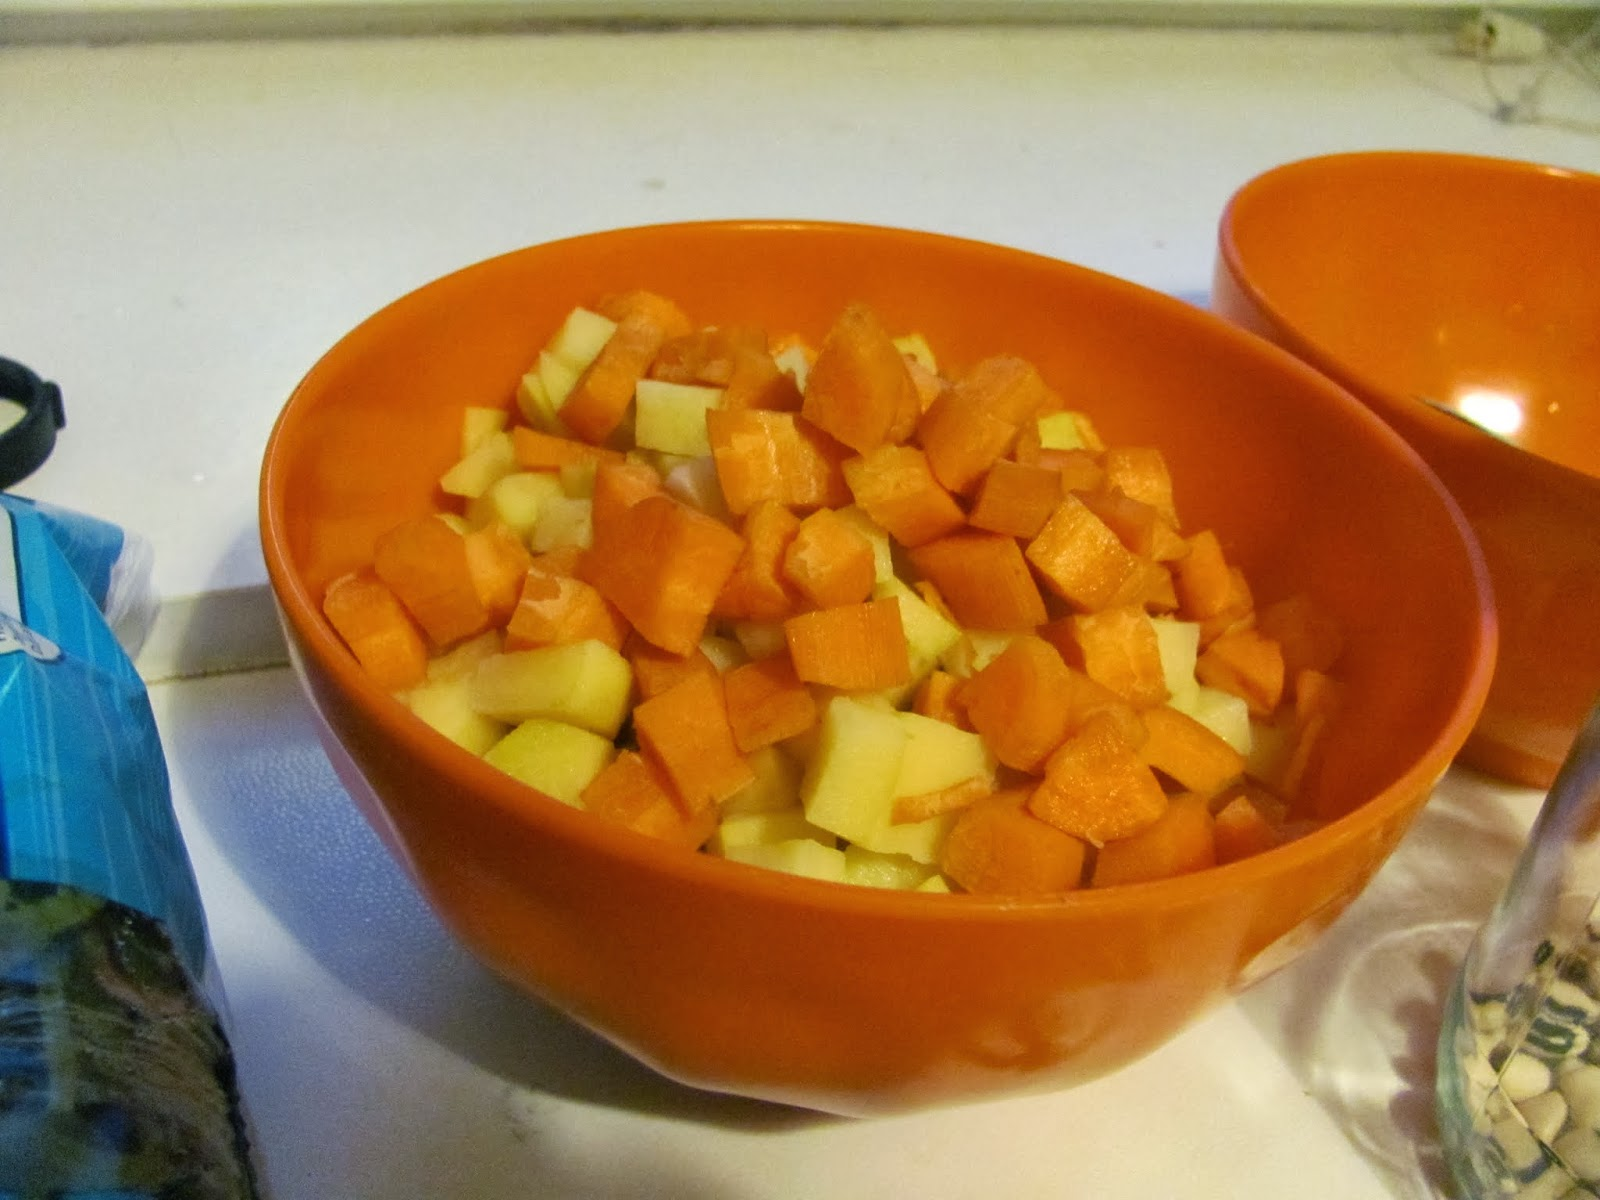 Carrots and Potatoes for soup